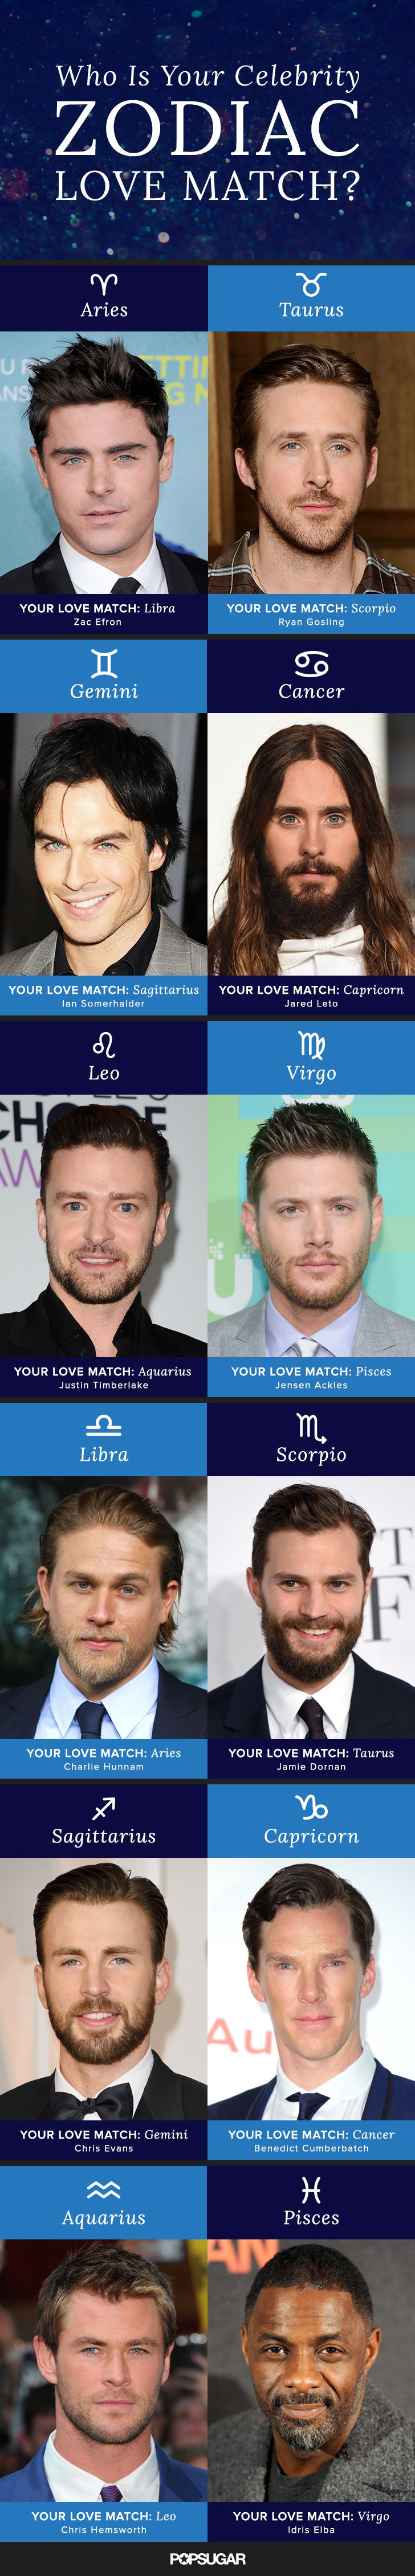 Perfect Celebrity Star Sign Matches | Free Daily Horoscopes